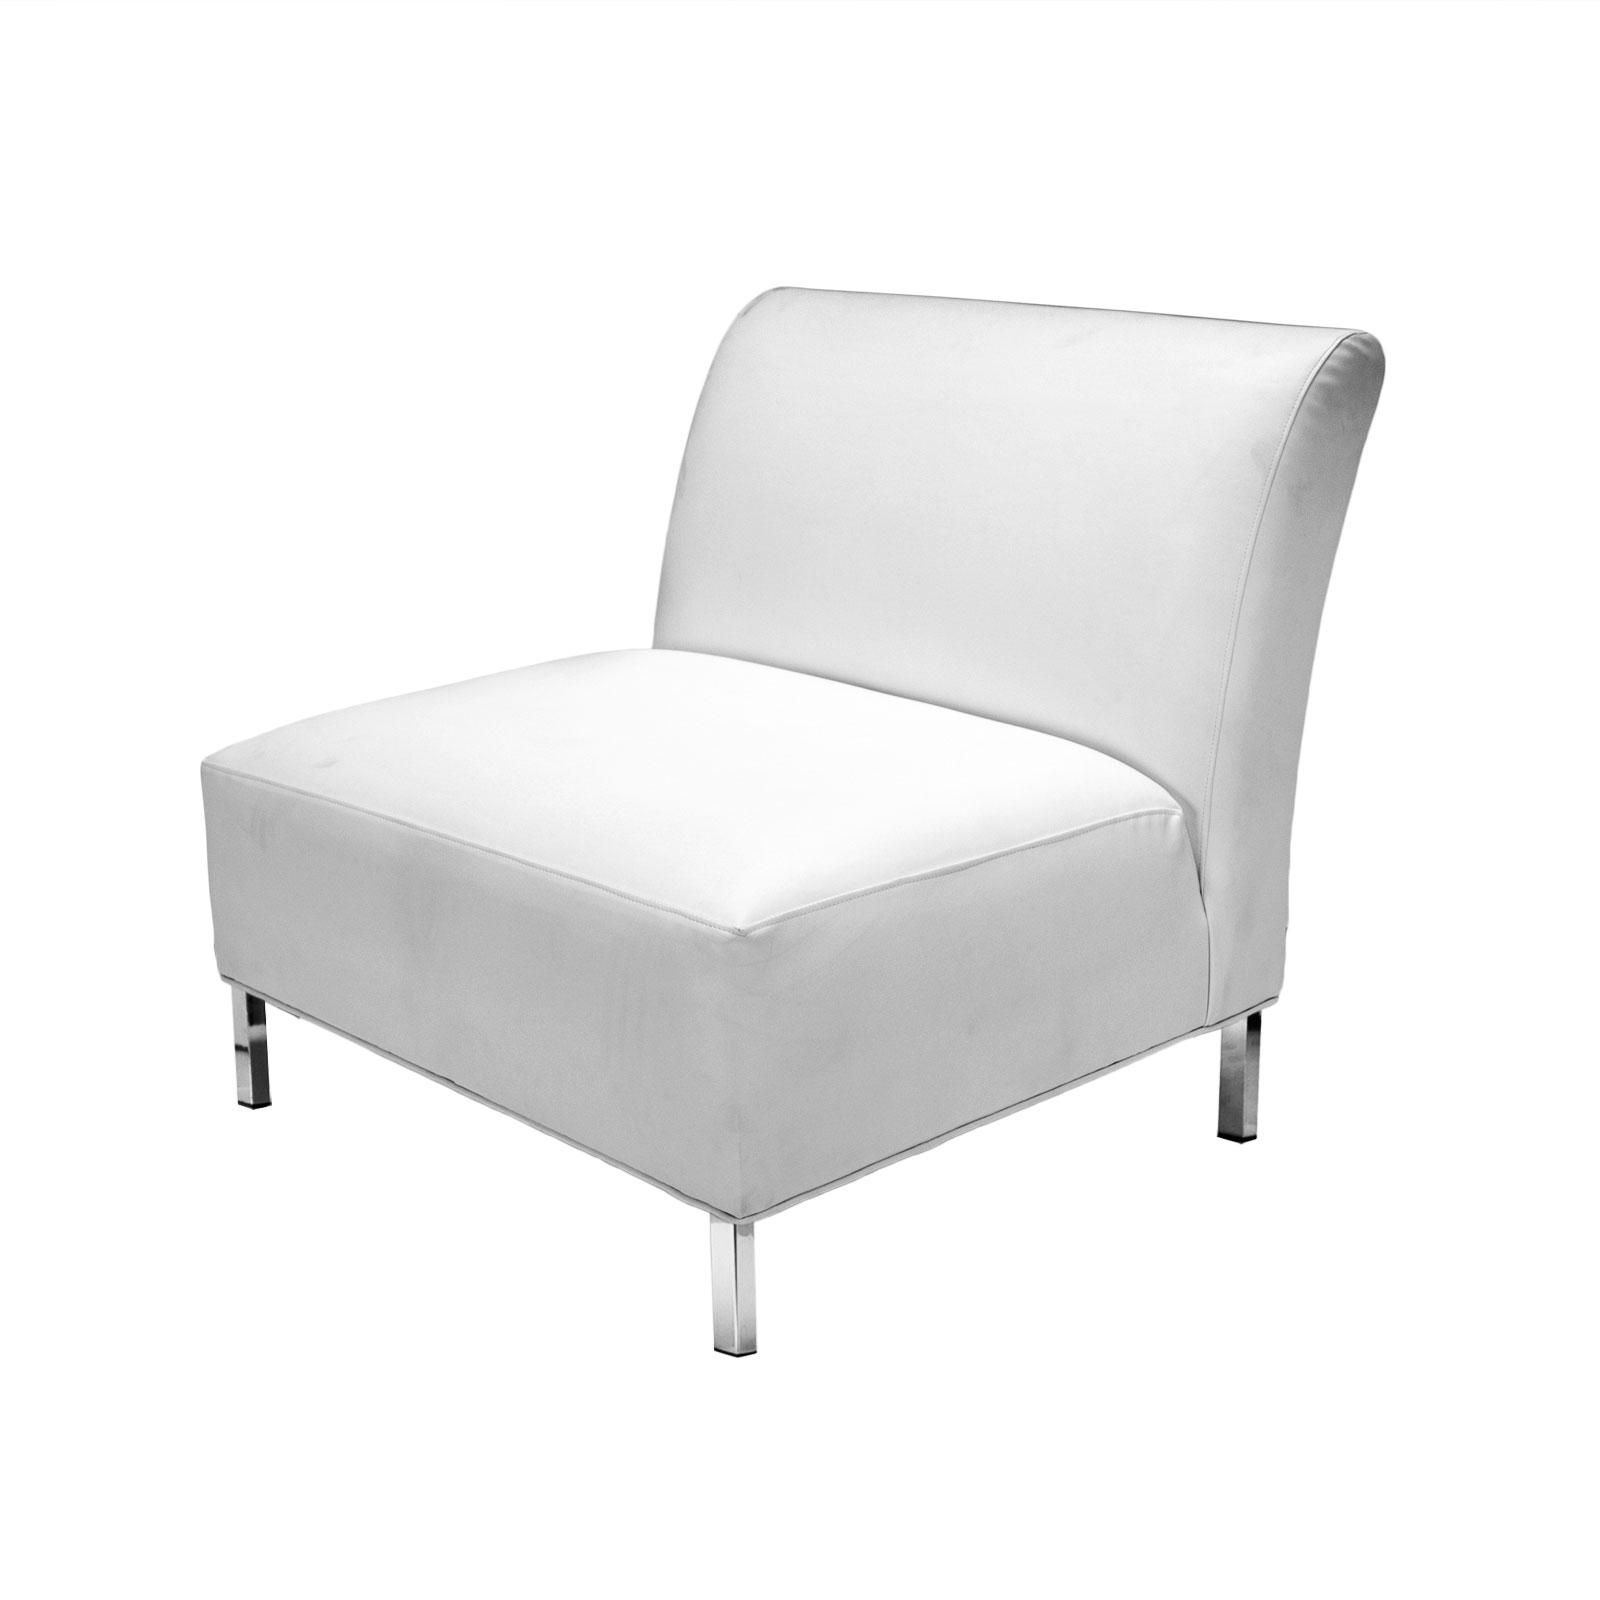 white chair rentals covers costco sophia event furniture rental formdecor